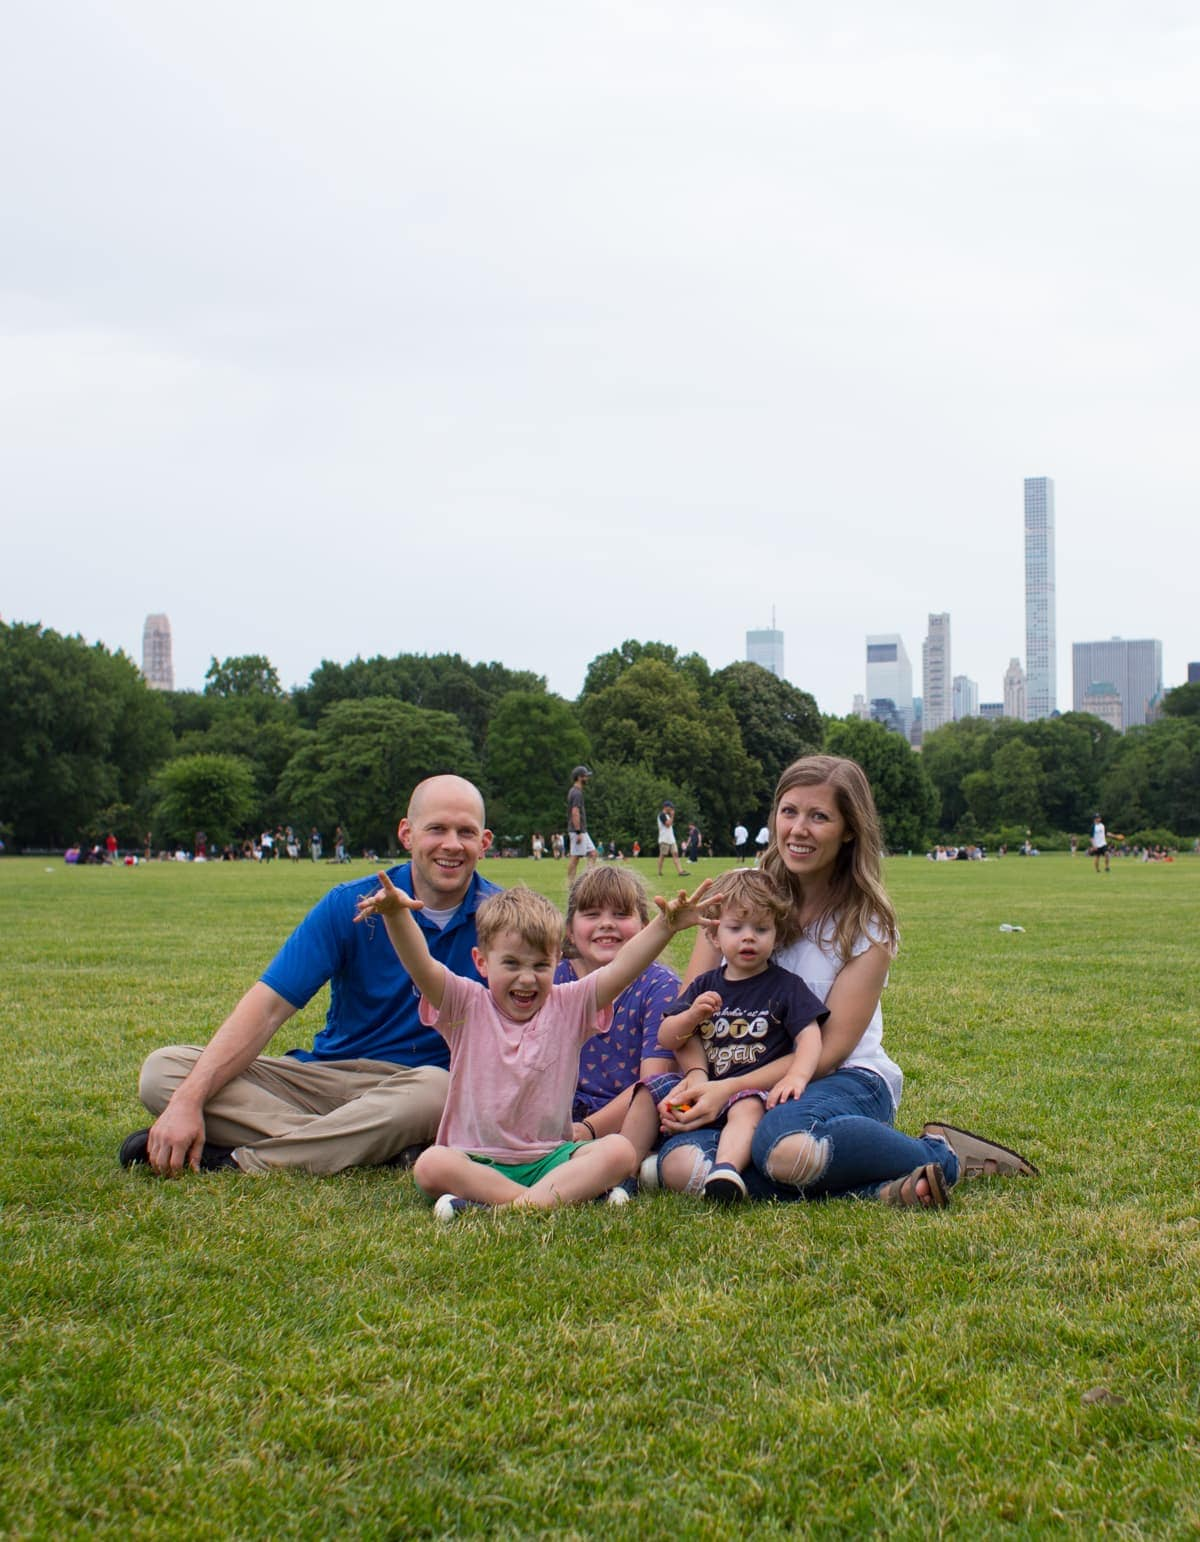 Brennan family sitting in a grassy field